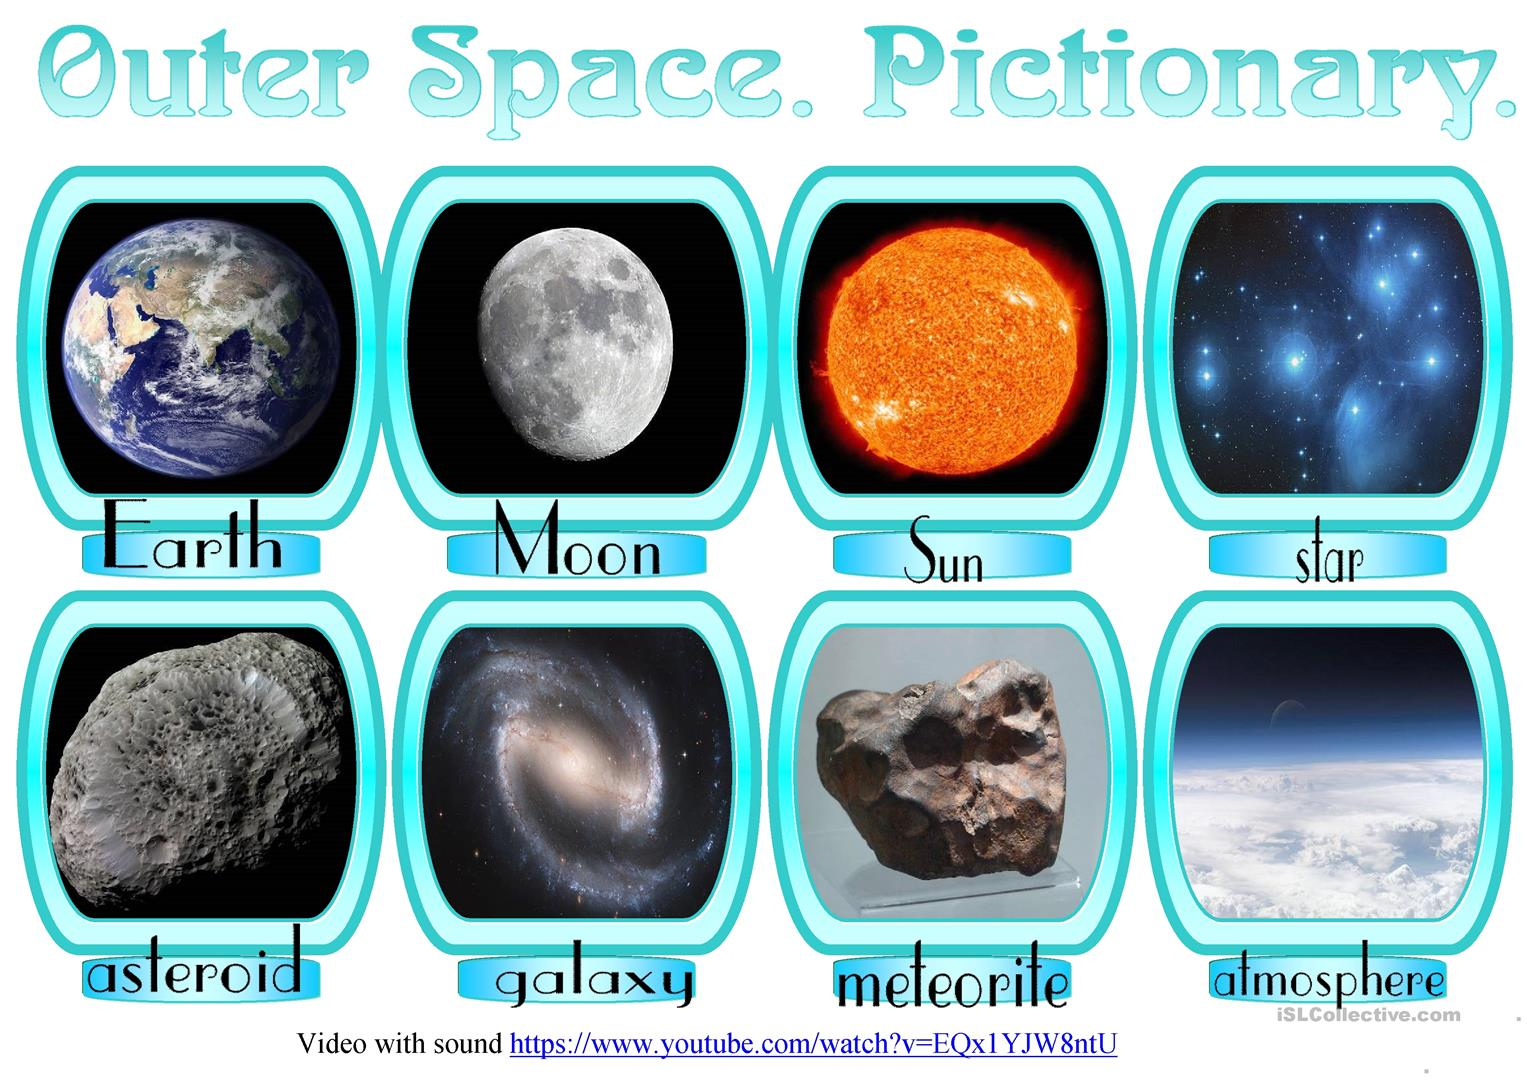 Outer Space Pictionary